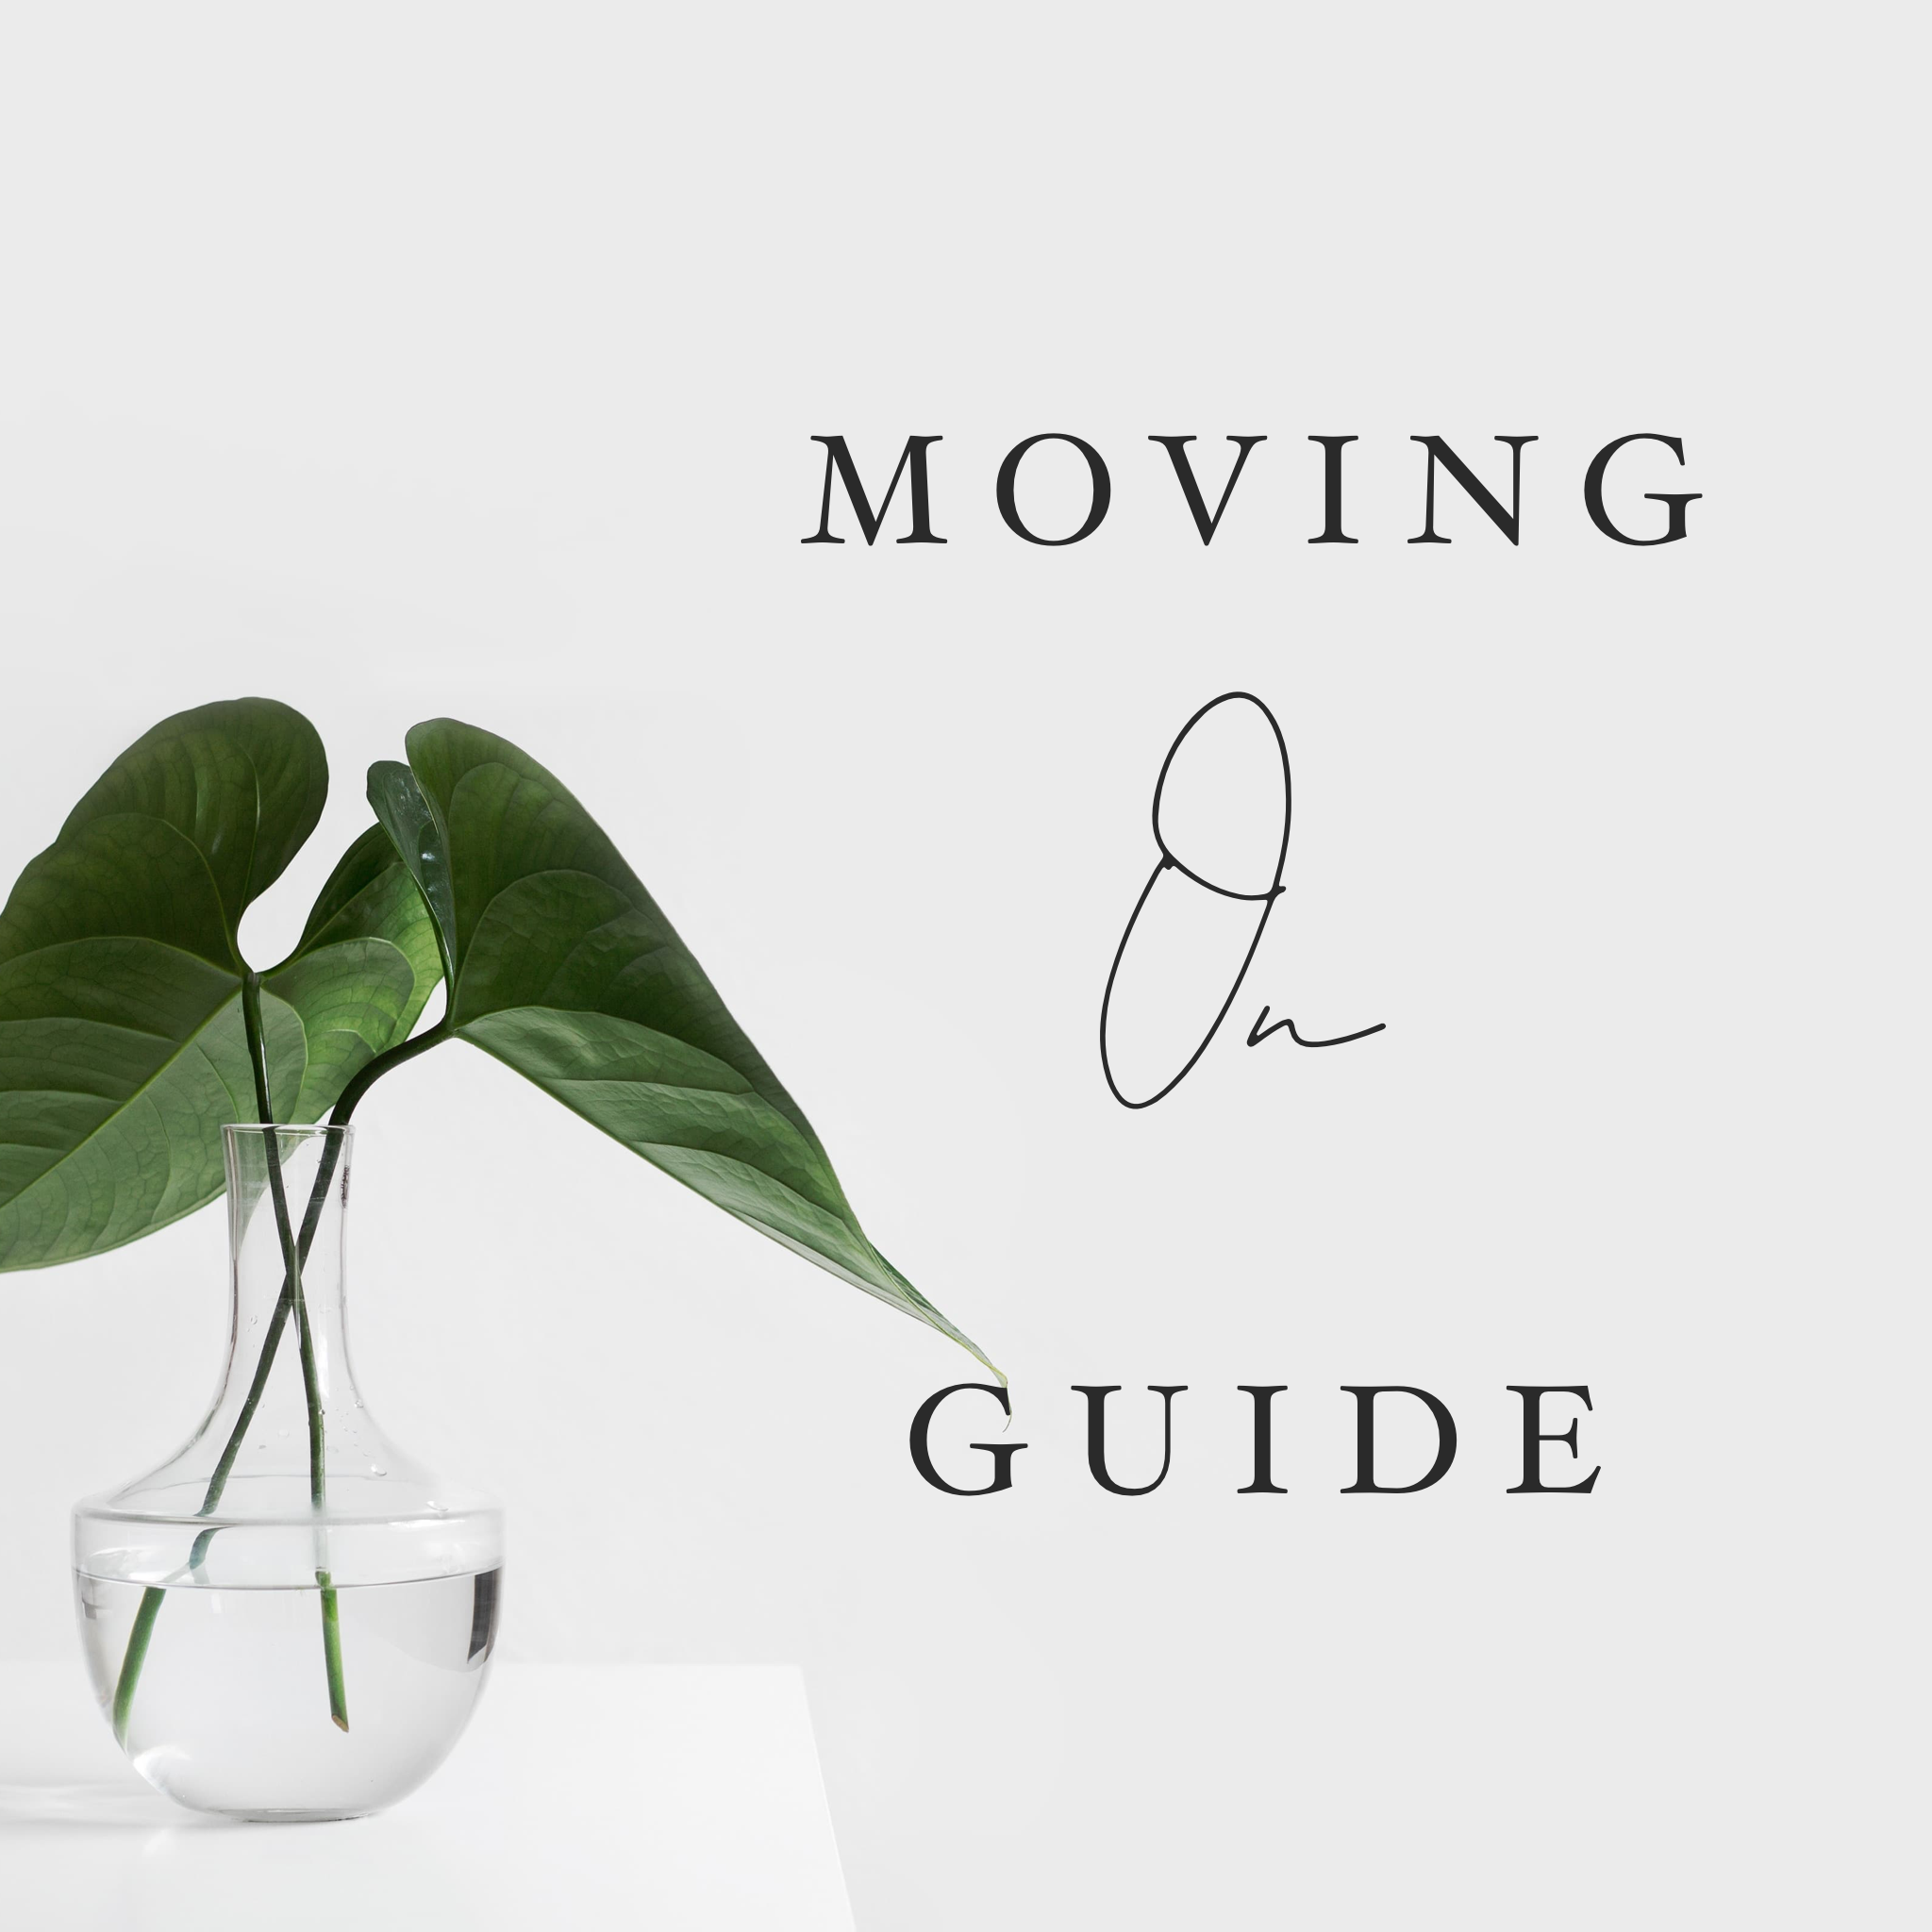 Moving On Guide Artwork.PNG